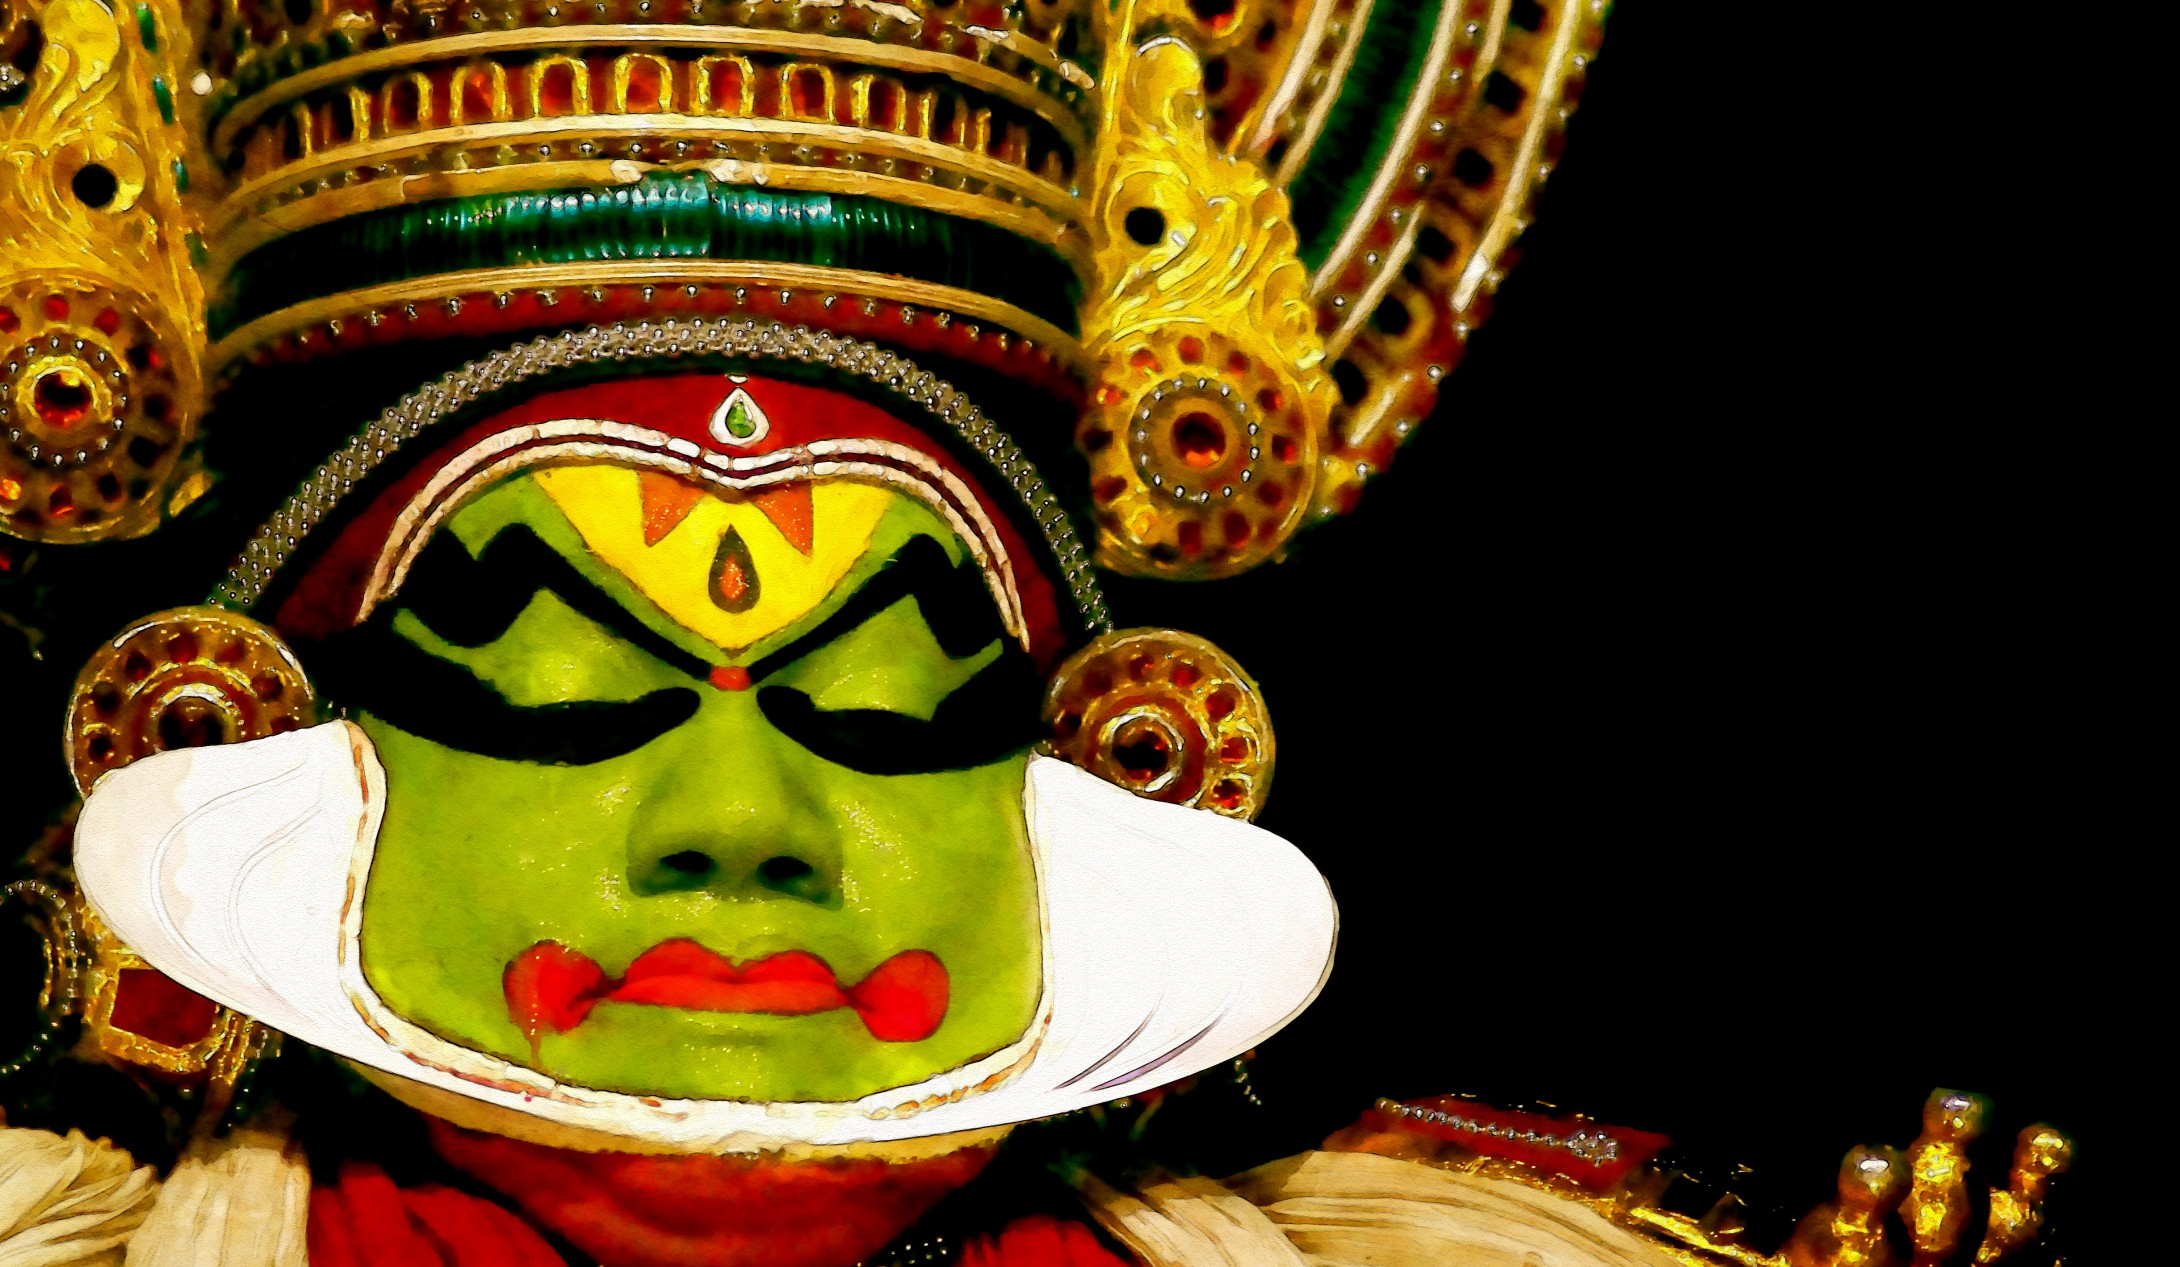 India Itinerary | Kathakali_credit Aapthamithra_iStock_Thinkstock - http___www.thinkstockphotos.co.uk_image_stock-photo-the-face-painted-dancer_472973442